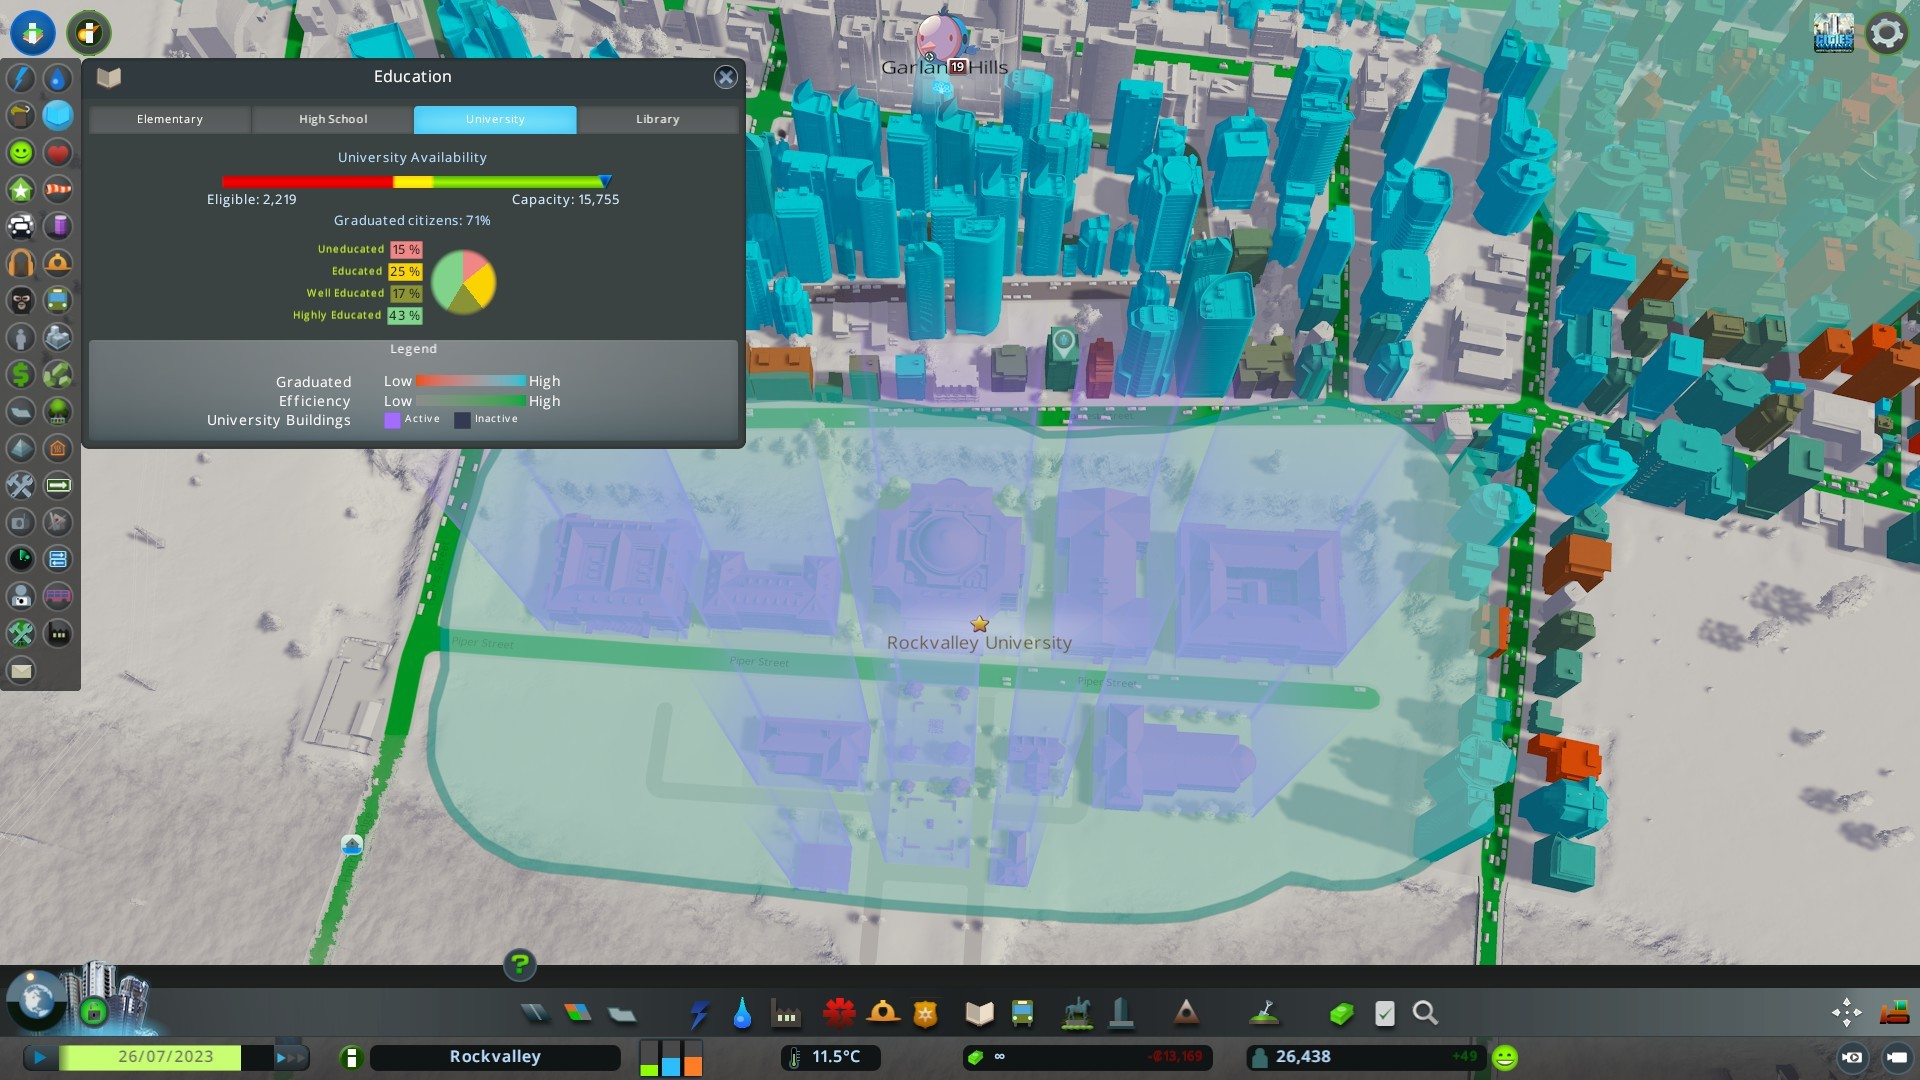 Cities: Skylines gets Campus DLC this month